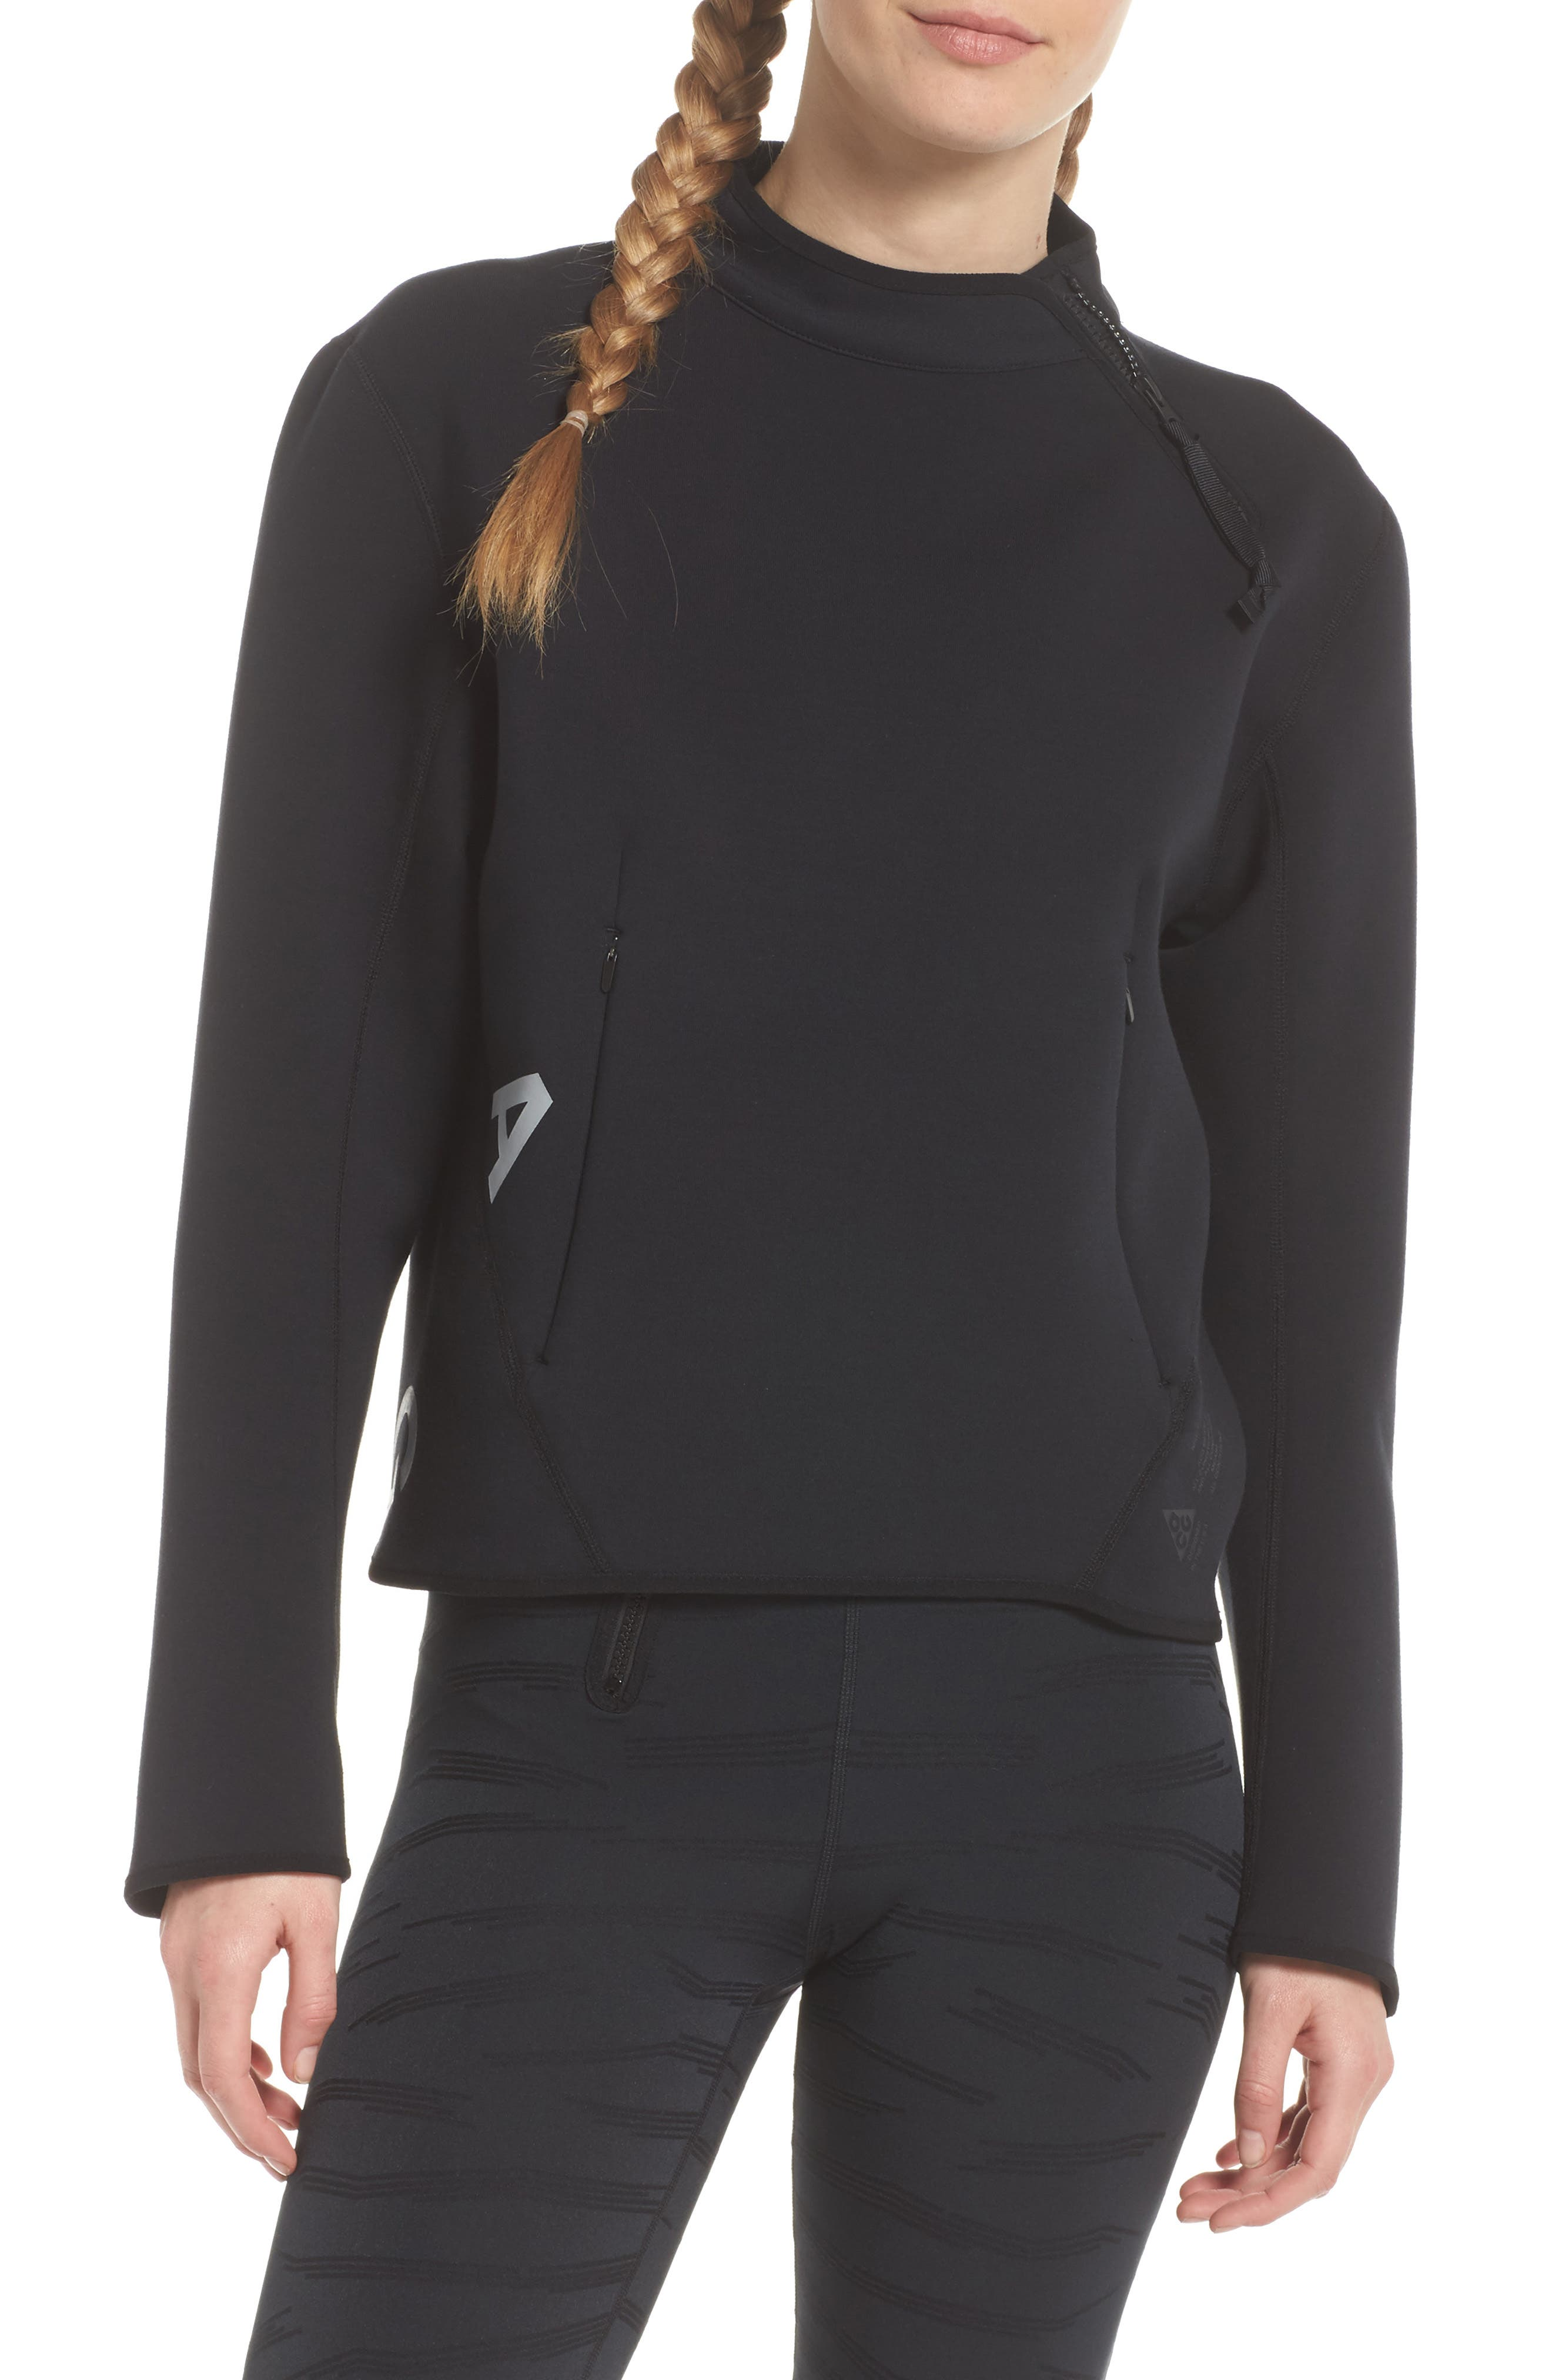 NikeLab ACG Fleece Women's Crewneck Top, Main, color, 010